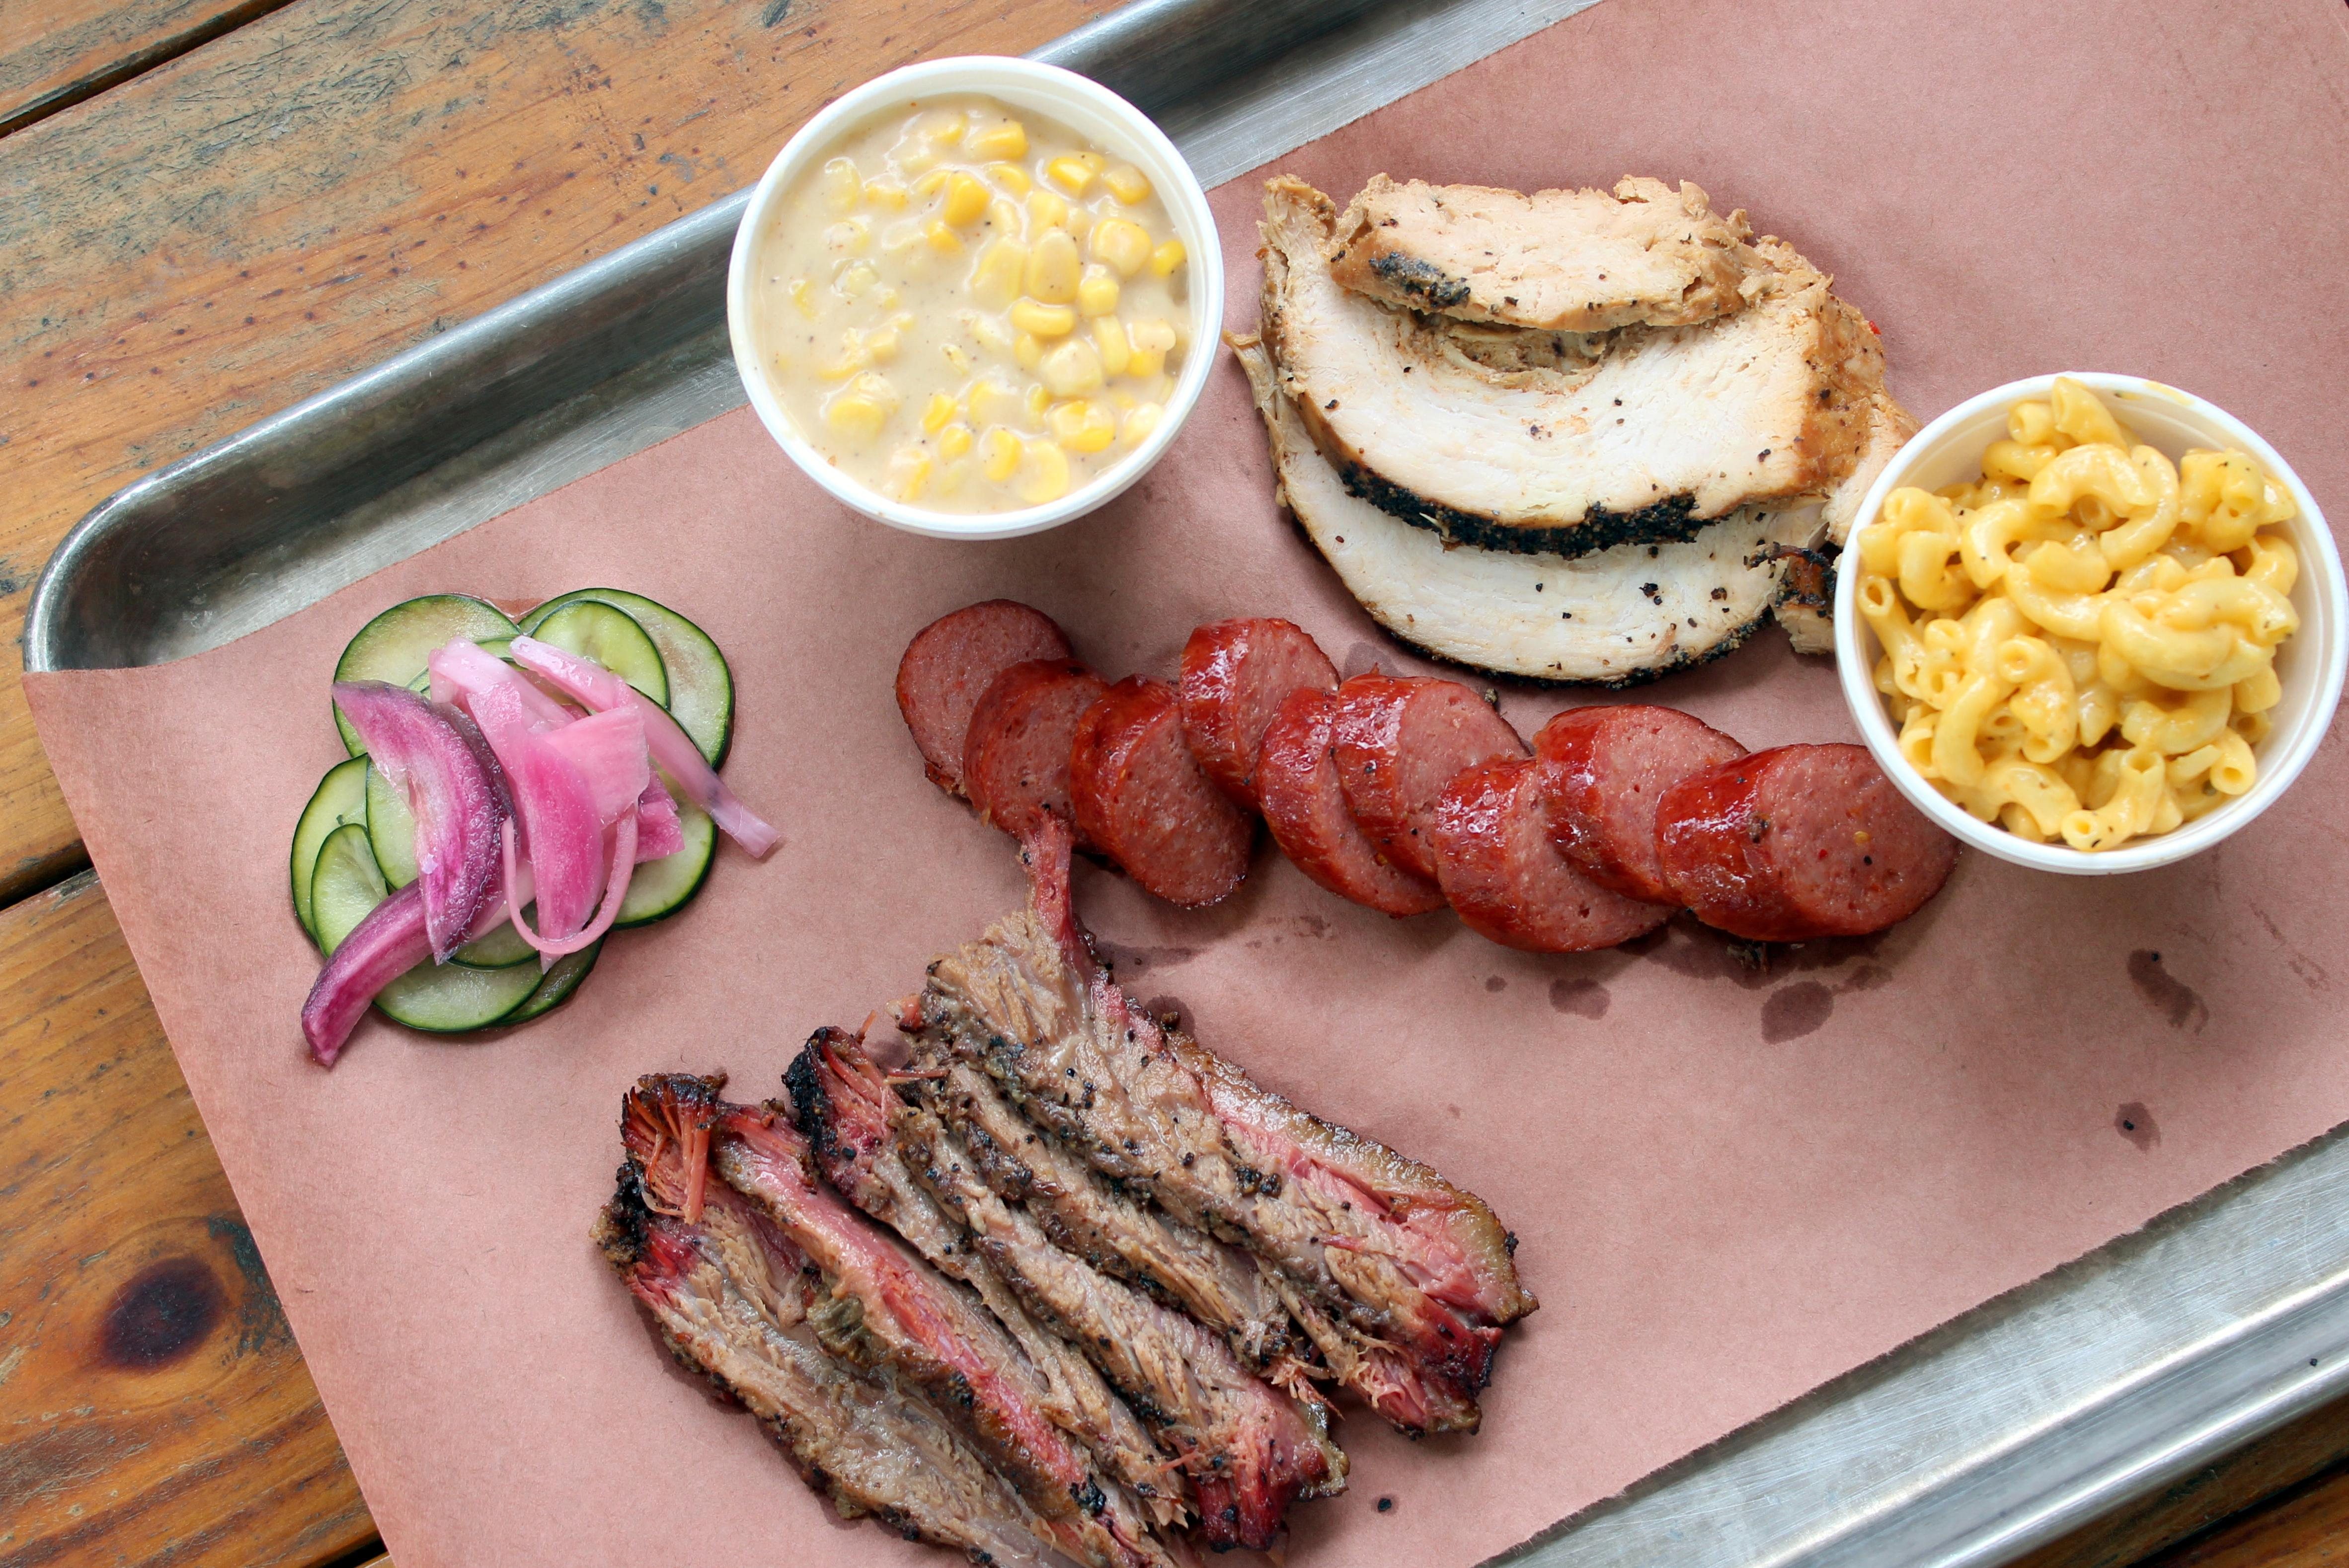 Restaurants across North and Northwest Austin, including Oakwood BBQ & Beer Garden off Braker Lane, remain open with takeout, curbside pickup and delivery options. (Amy Denney/Community Impact Newspaper)